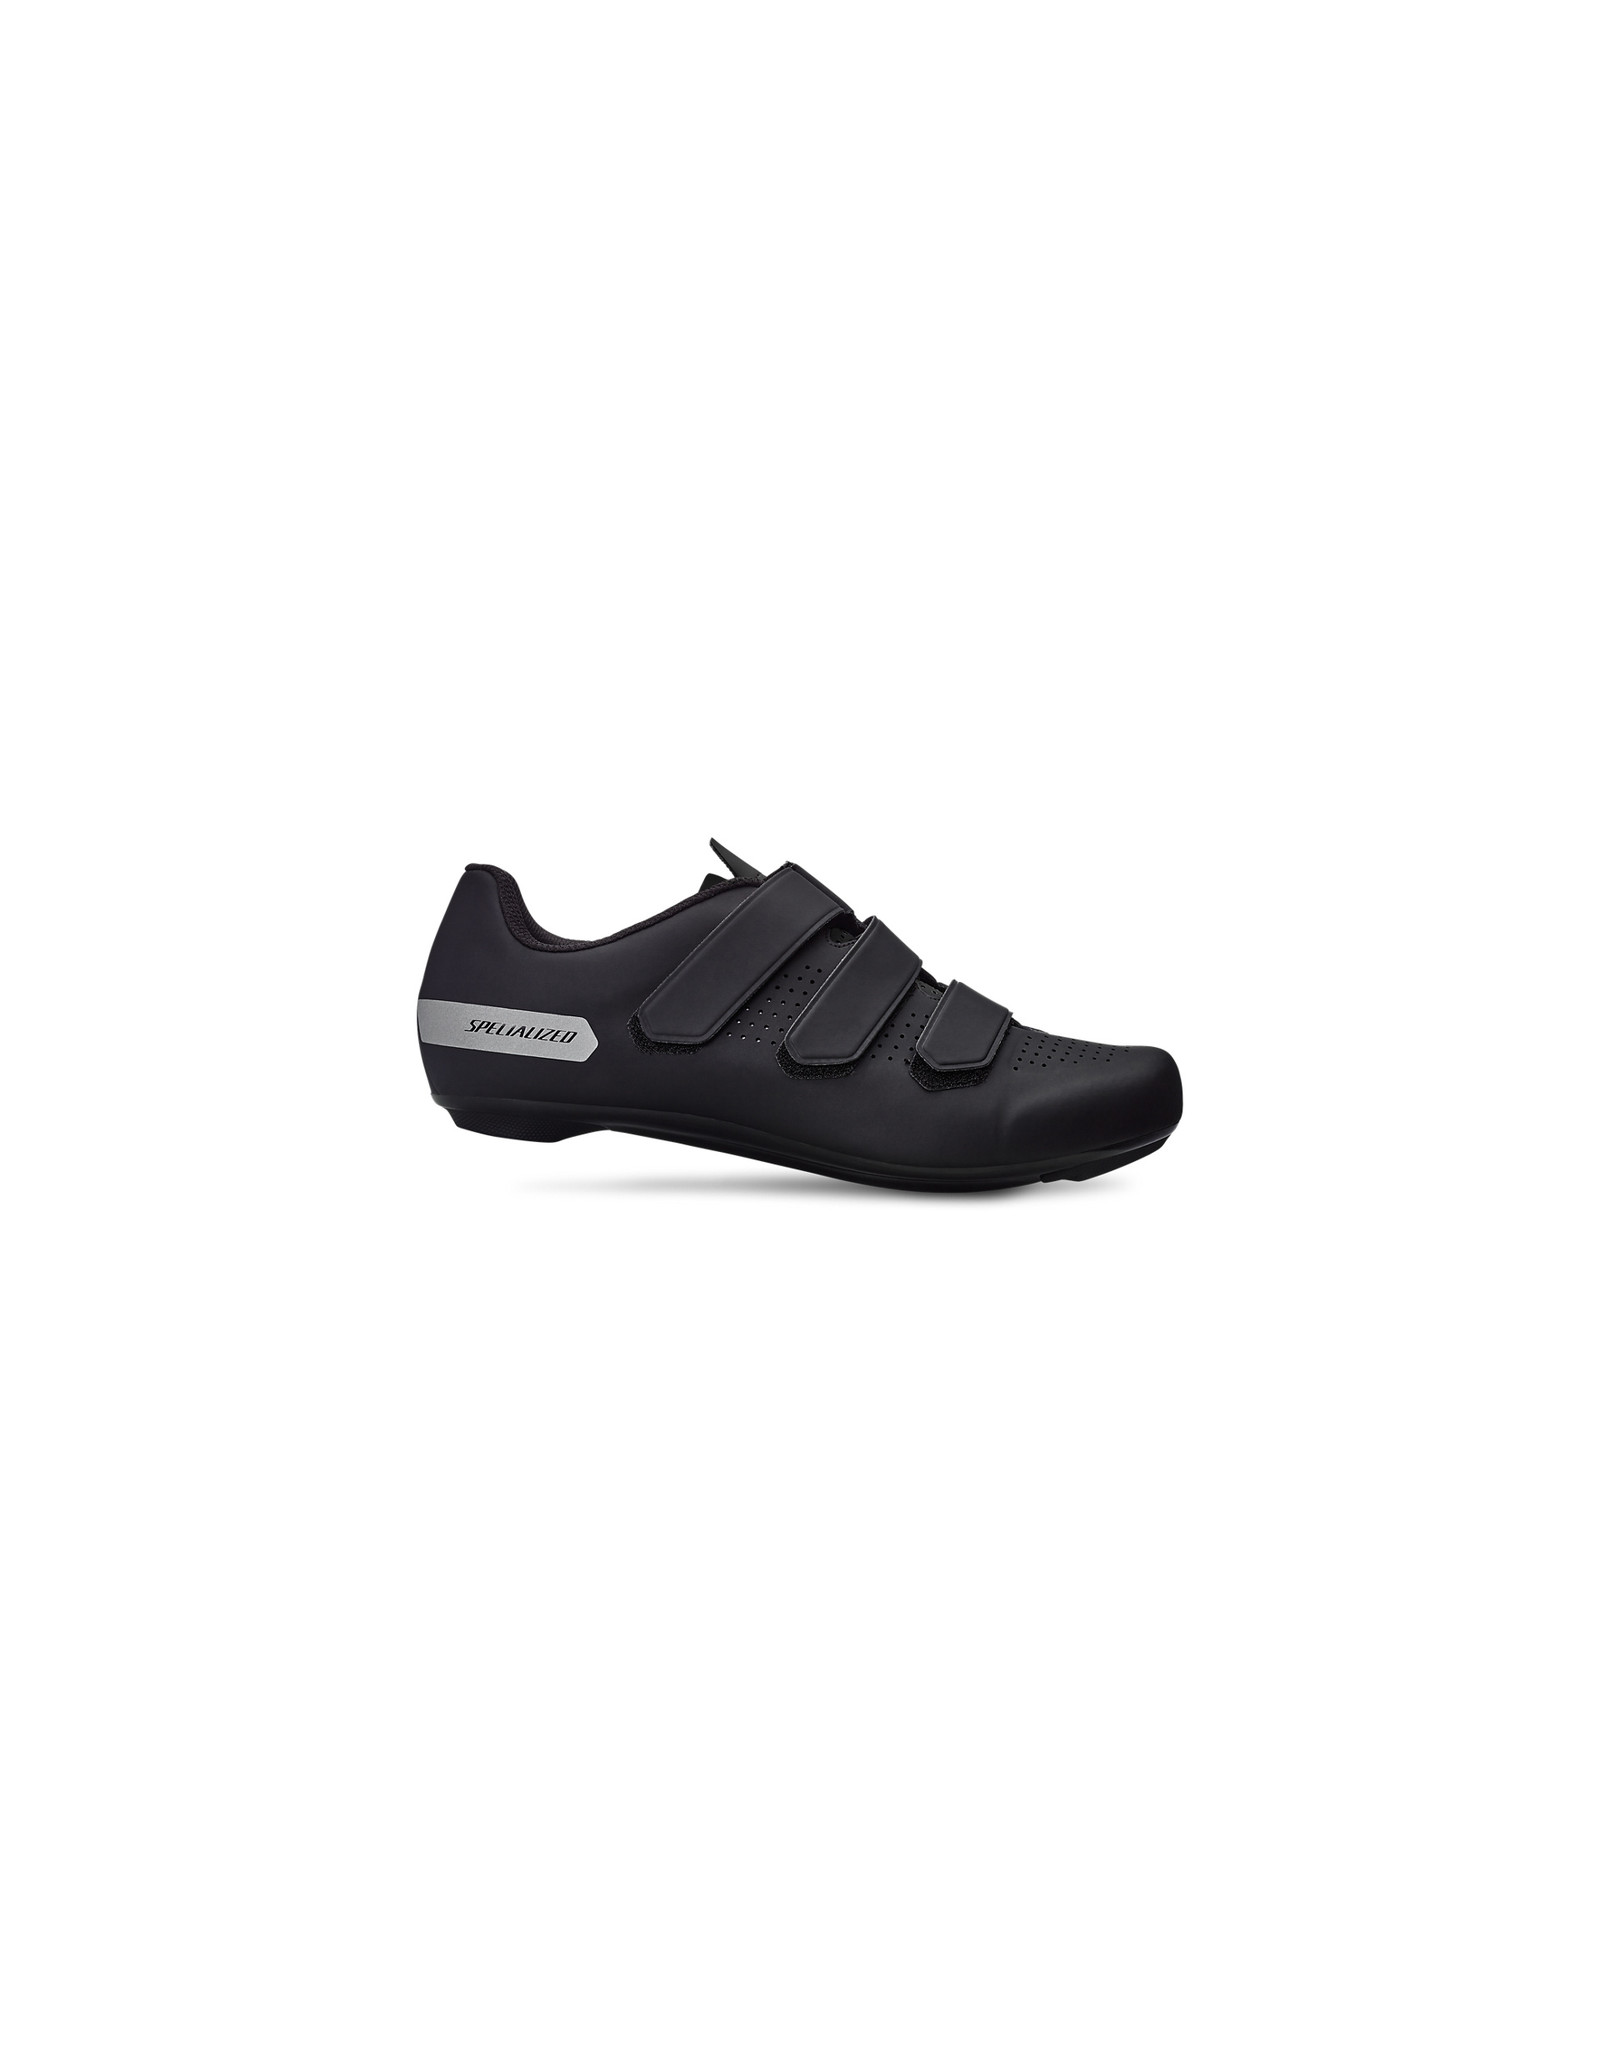 SPECIALIZED TORCH 1.0 RD SHOE BLK 41